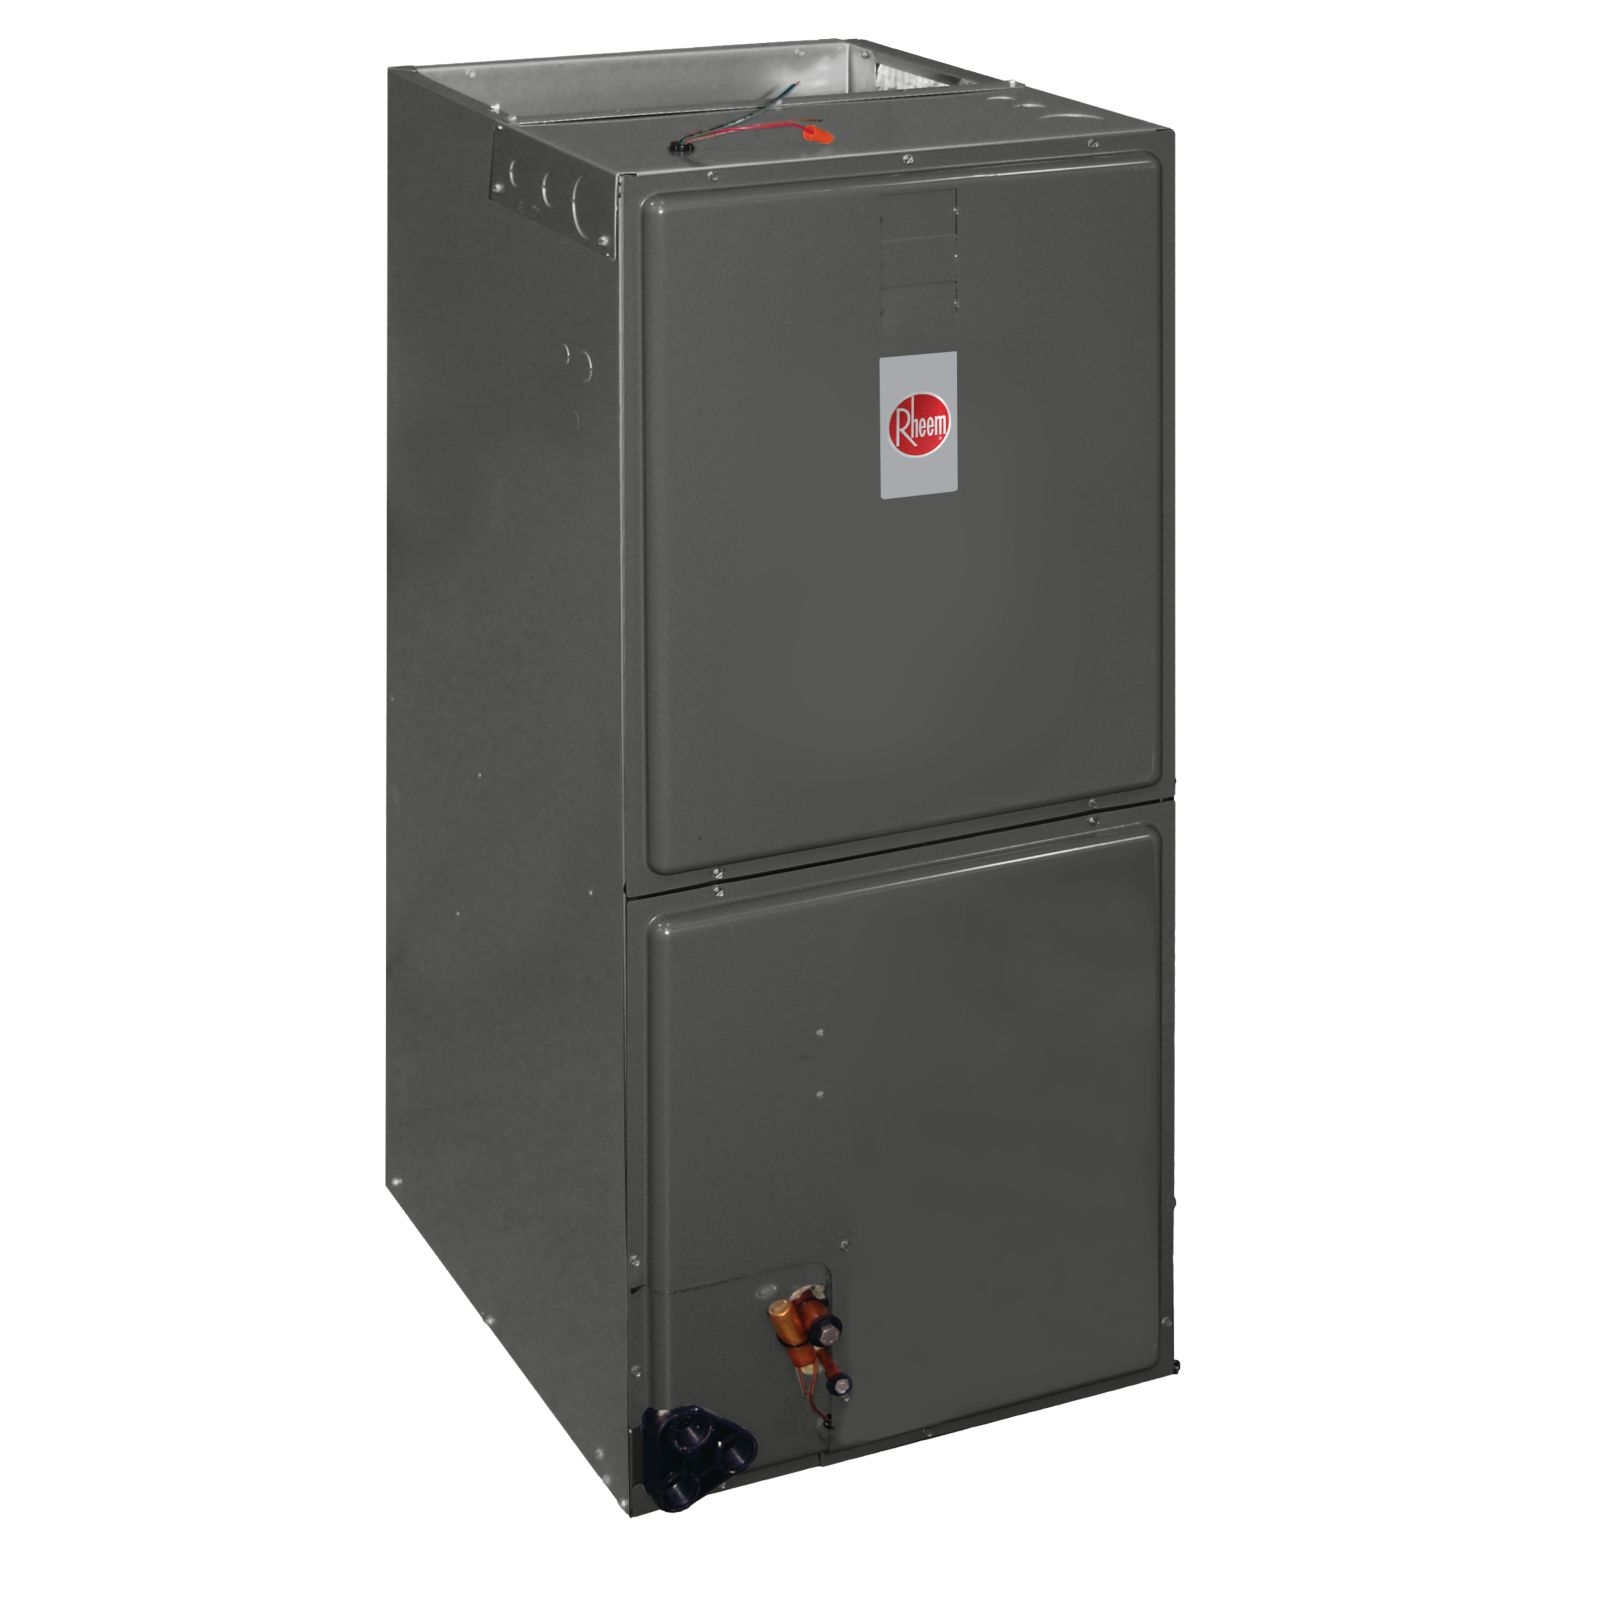 Rheem RHPL-HM4824JC - Premium 4 Ton Multiposition Air Handler with Comfort Control - Up to 16 SEER - R410A - ECM Motor